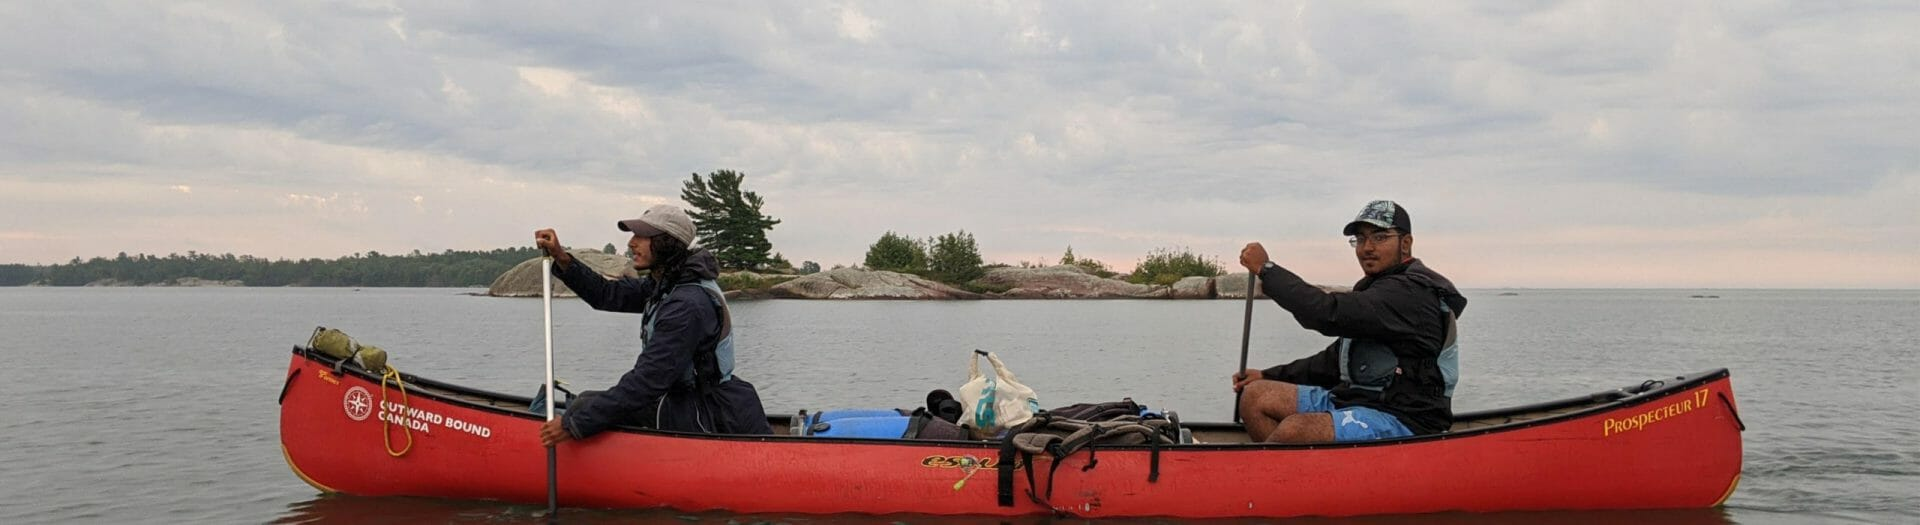 Two people paddling a canoe on a lake with an island in the distance